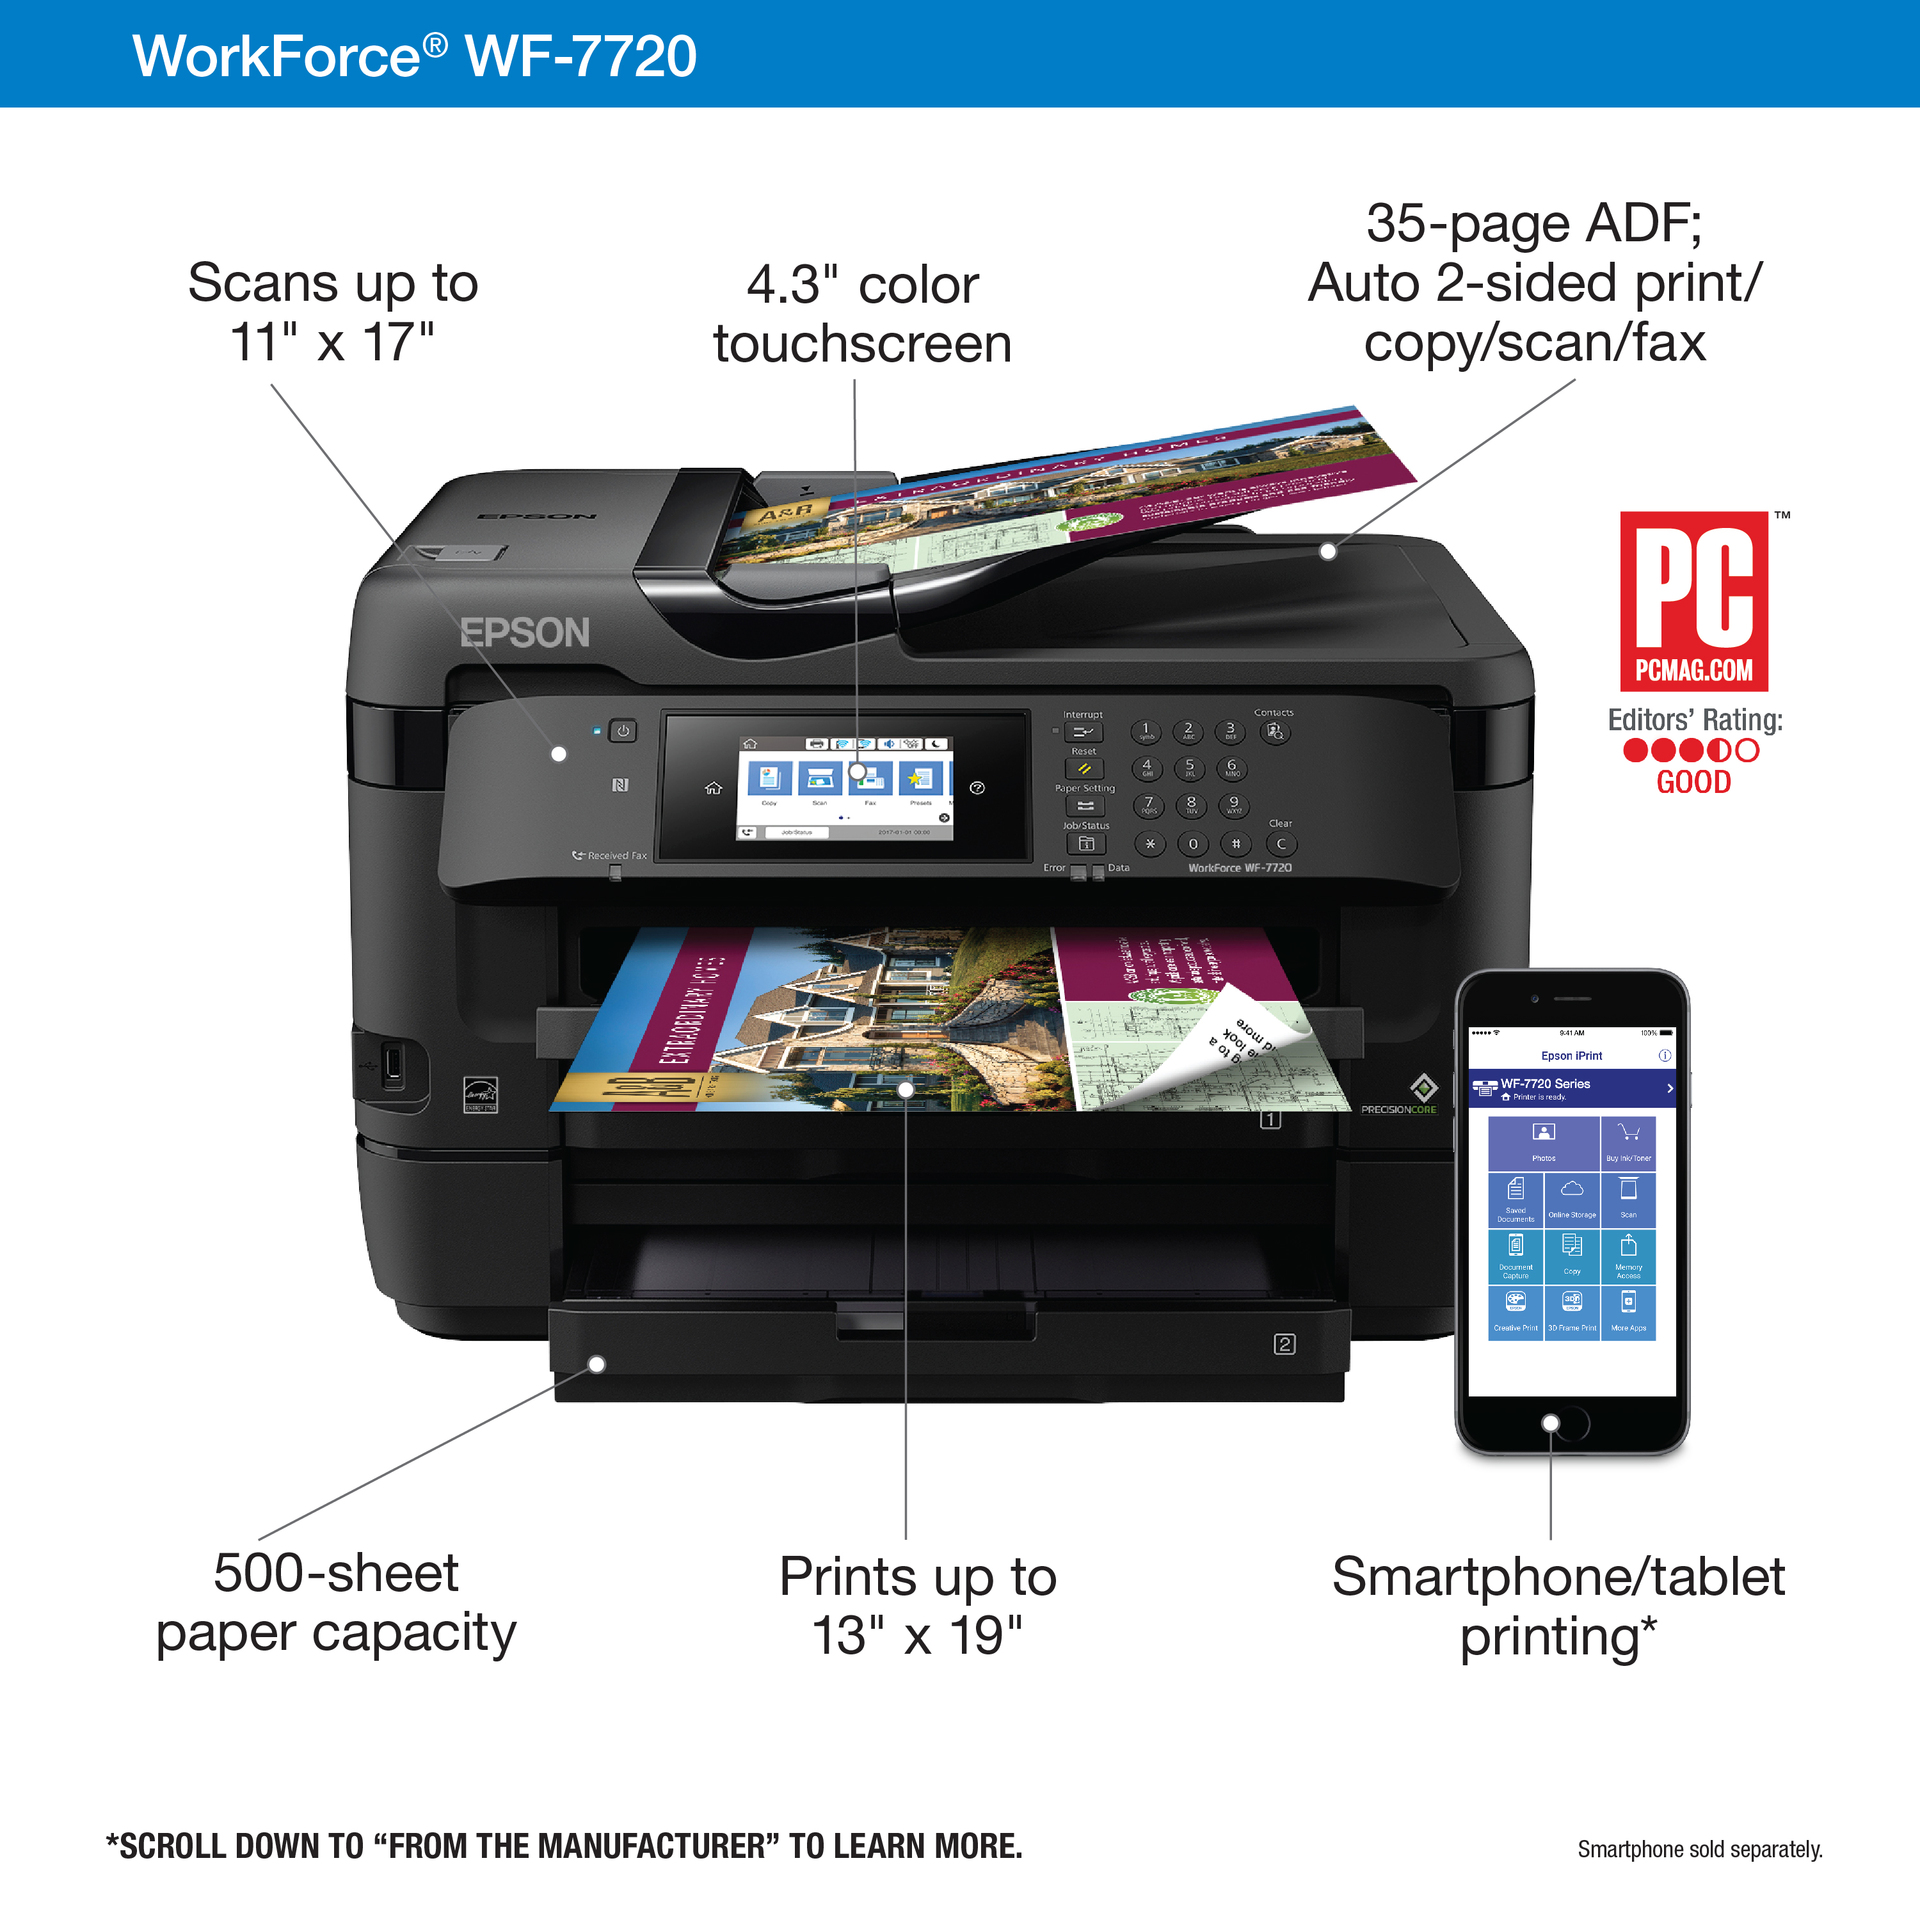 EPSON WorkForce WF-7720 | Dell United States